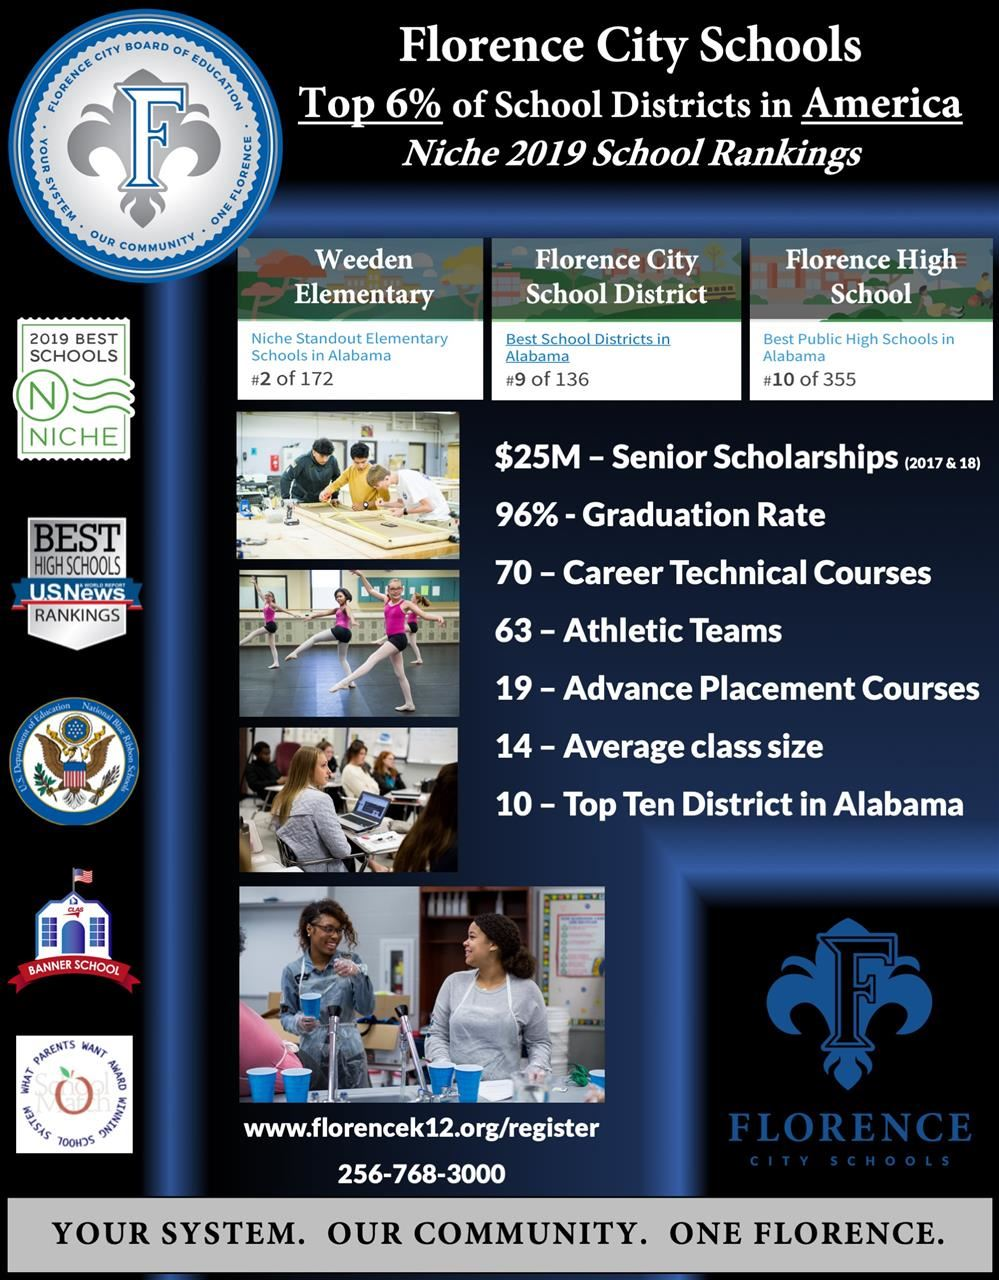 Picture of a Florence City Schools rankings from NICHE 2019.